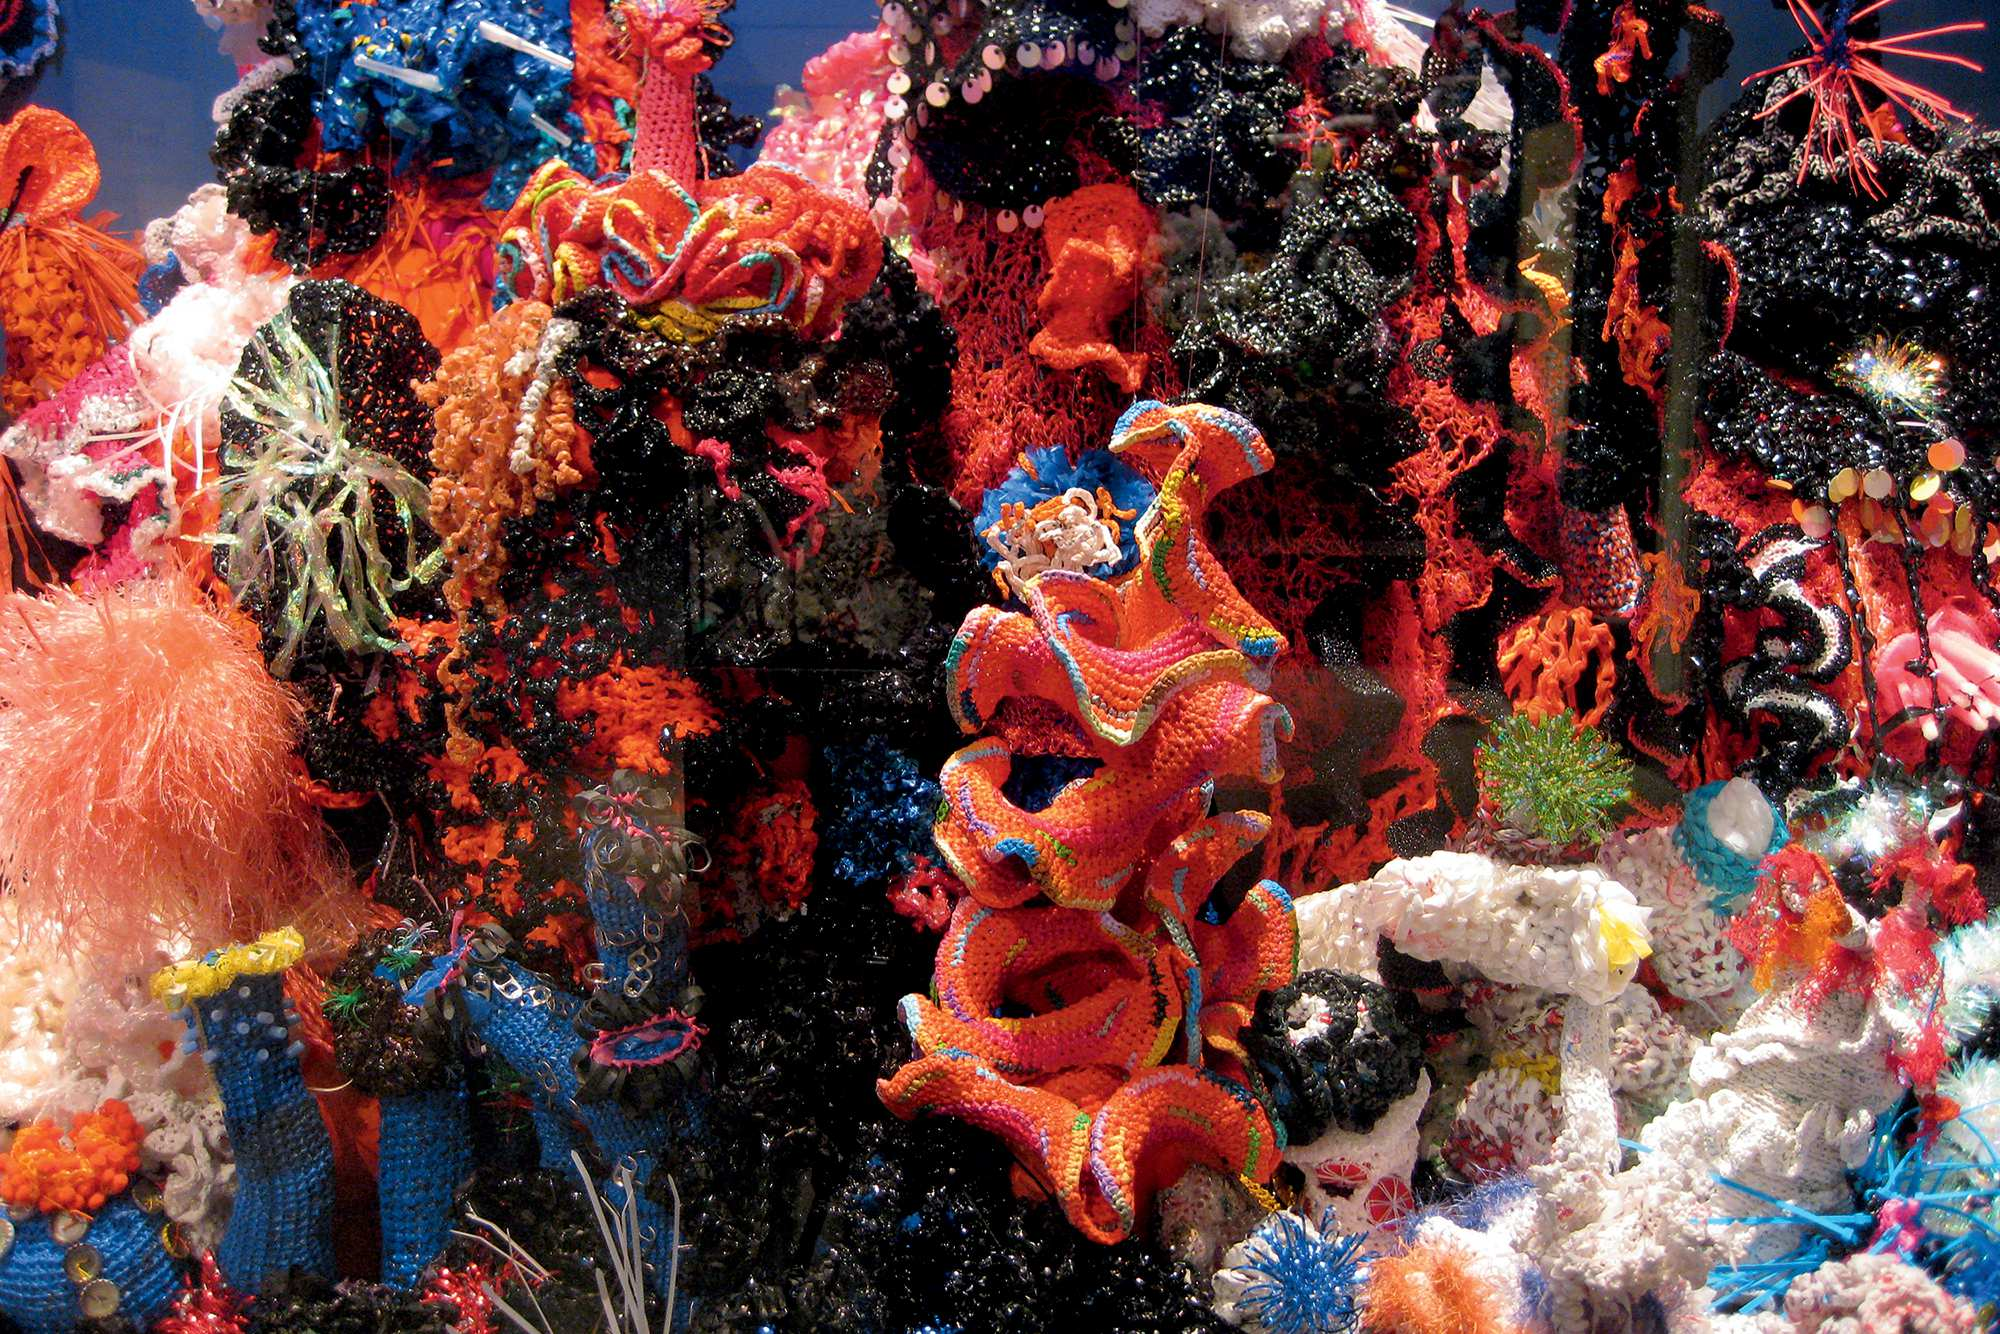 Reef sculptures